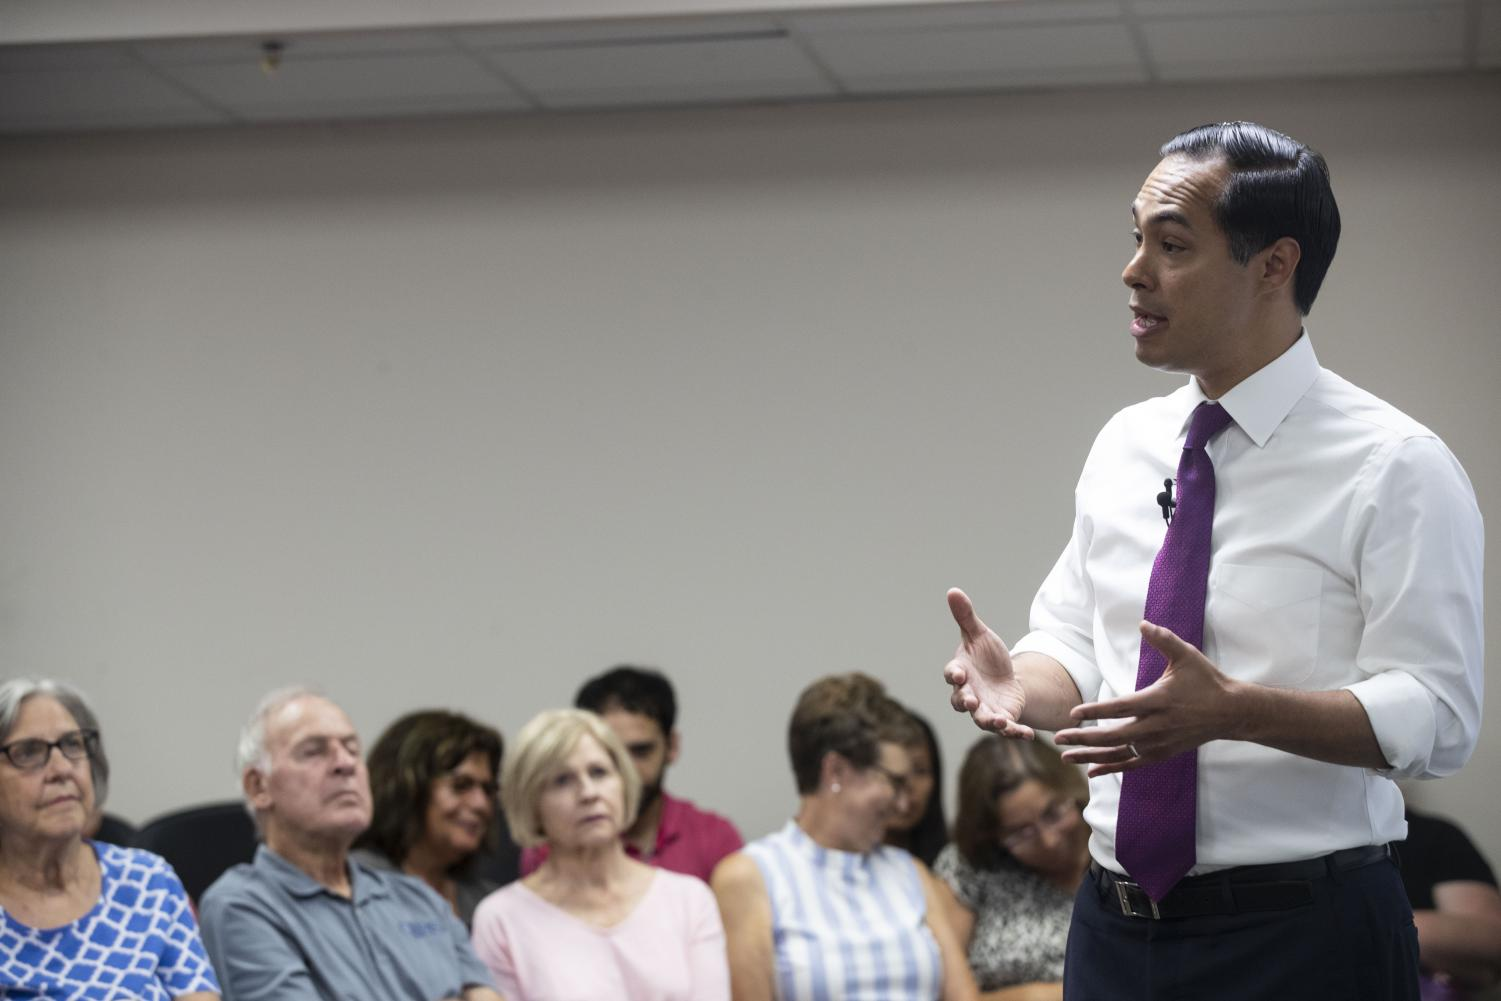 Former U.S. Secretary of Housing and Urban Development and 2020 Democratic candidate Julian Castro speaks on gun violence at a town hall organized by Moms Demand Action volunteers in North Liberty on Wednesday, August 14, 2019. (Jenna Galligan/The Daily Iowan)